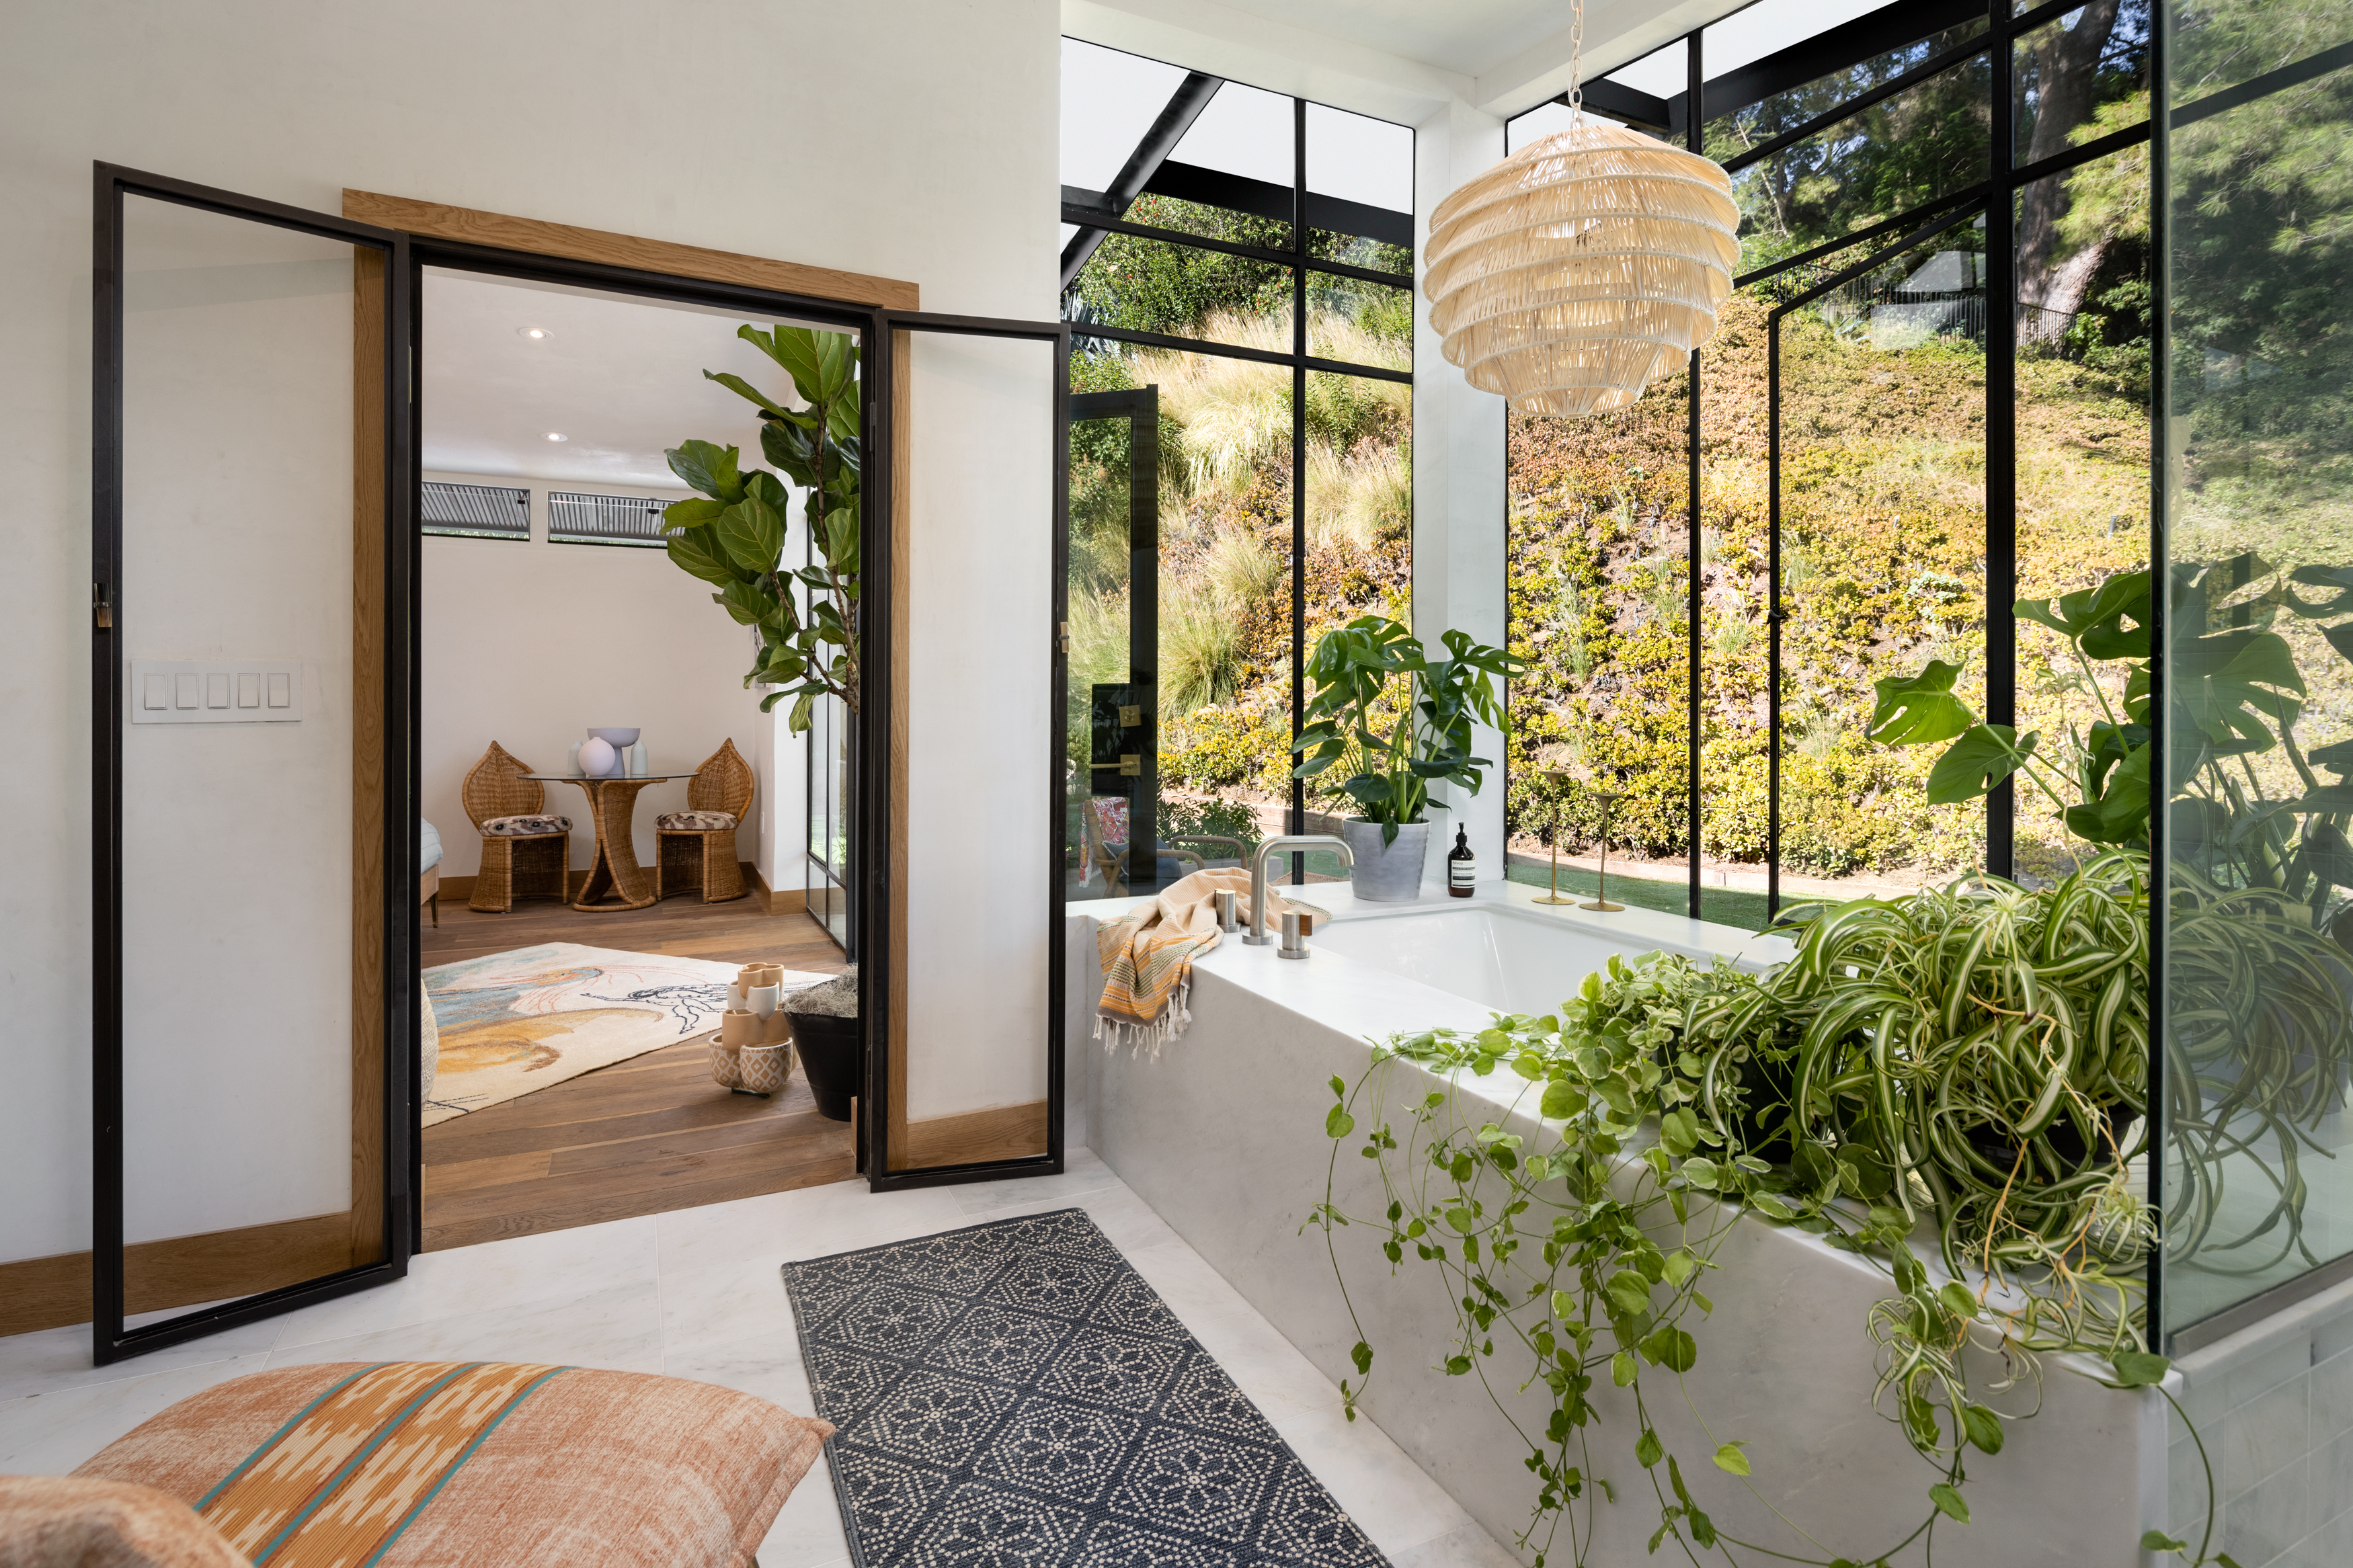 Designer Kim Gordon rolls out her latest creation in Laurel Canyon photo